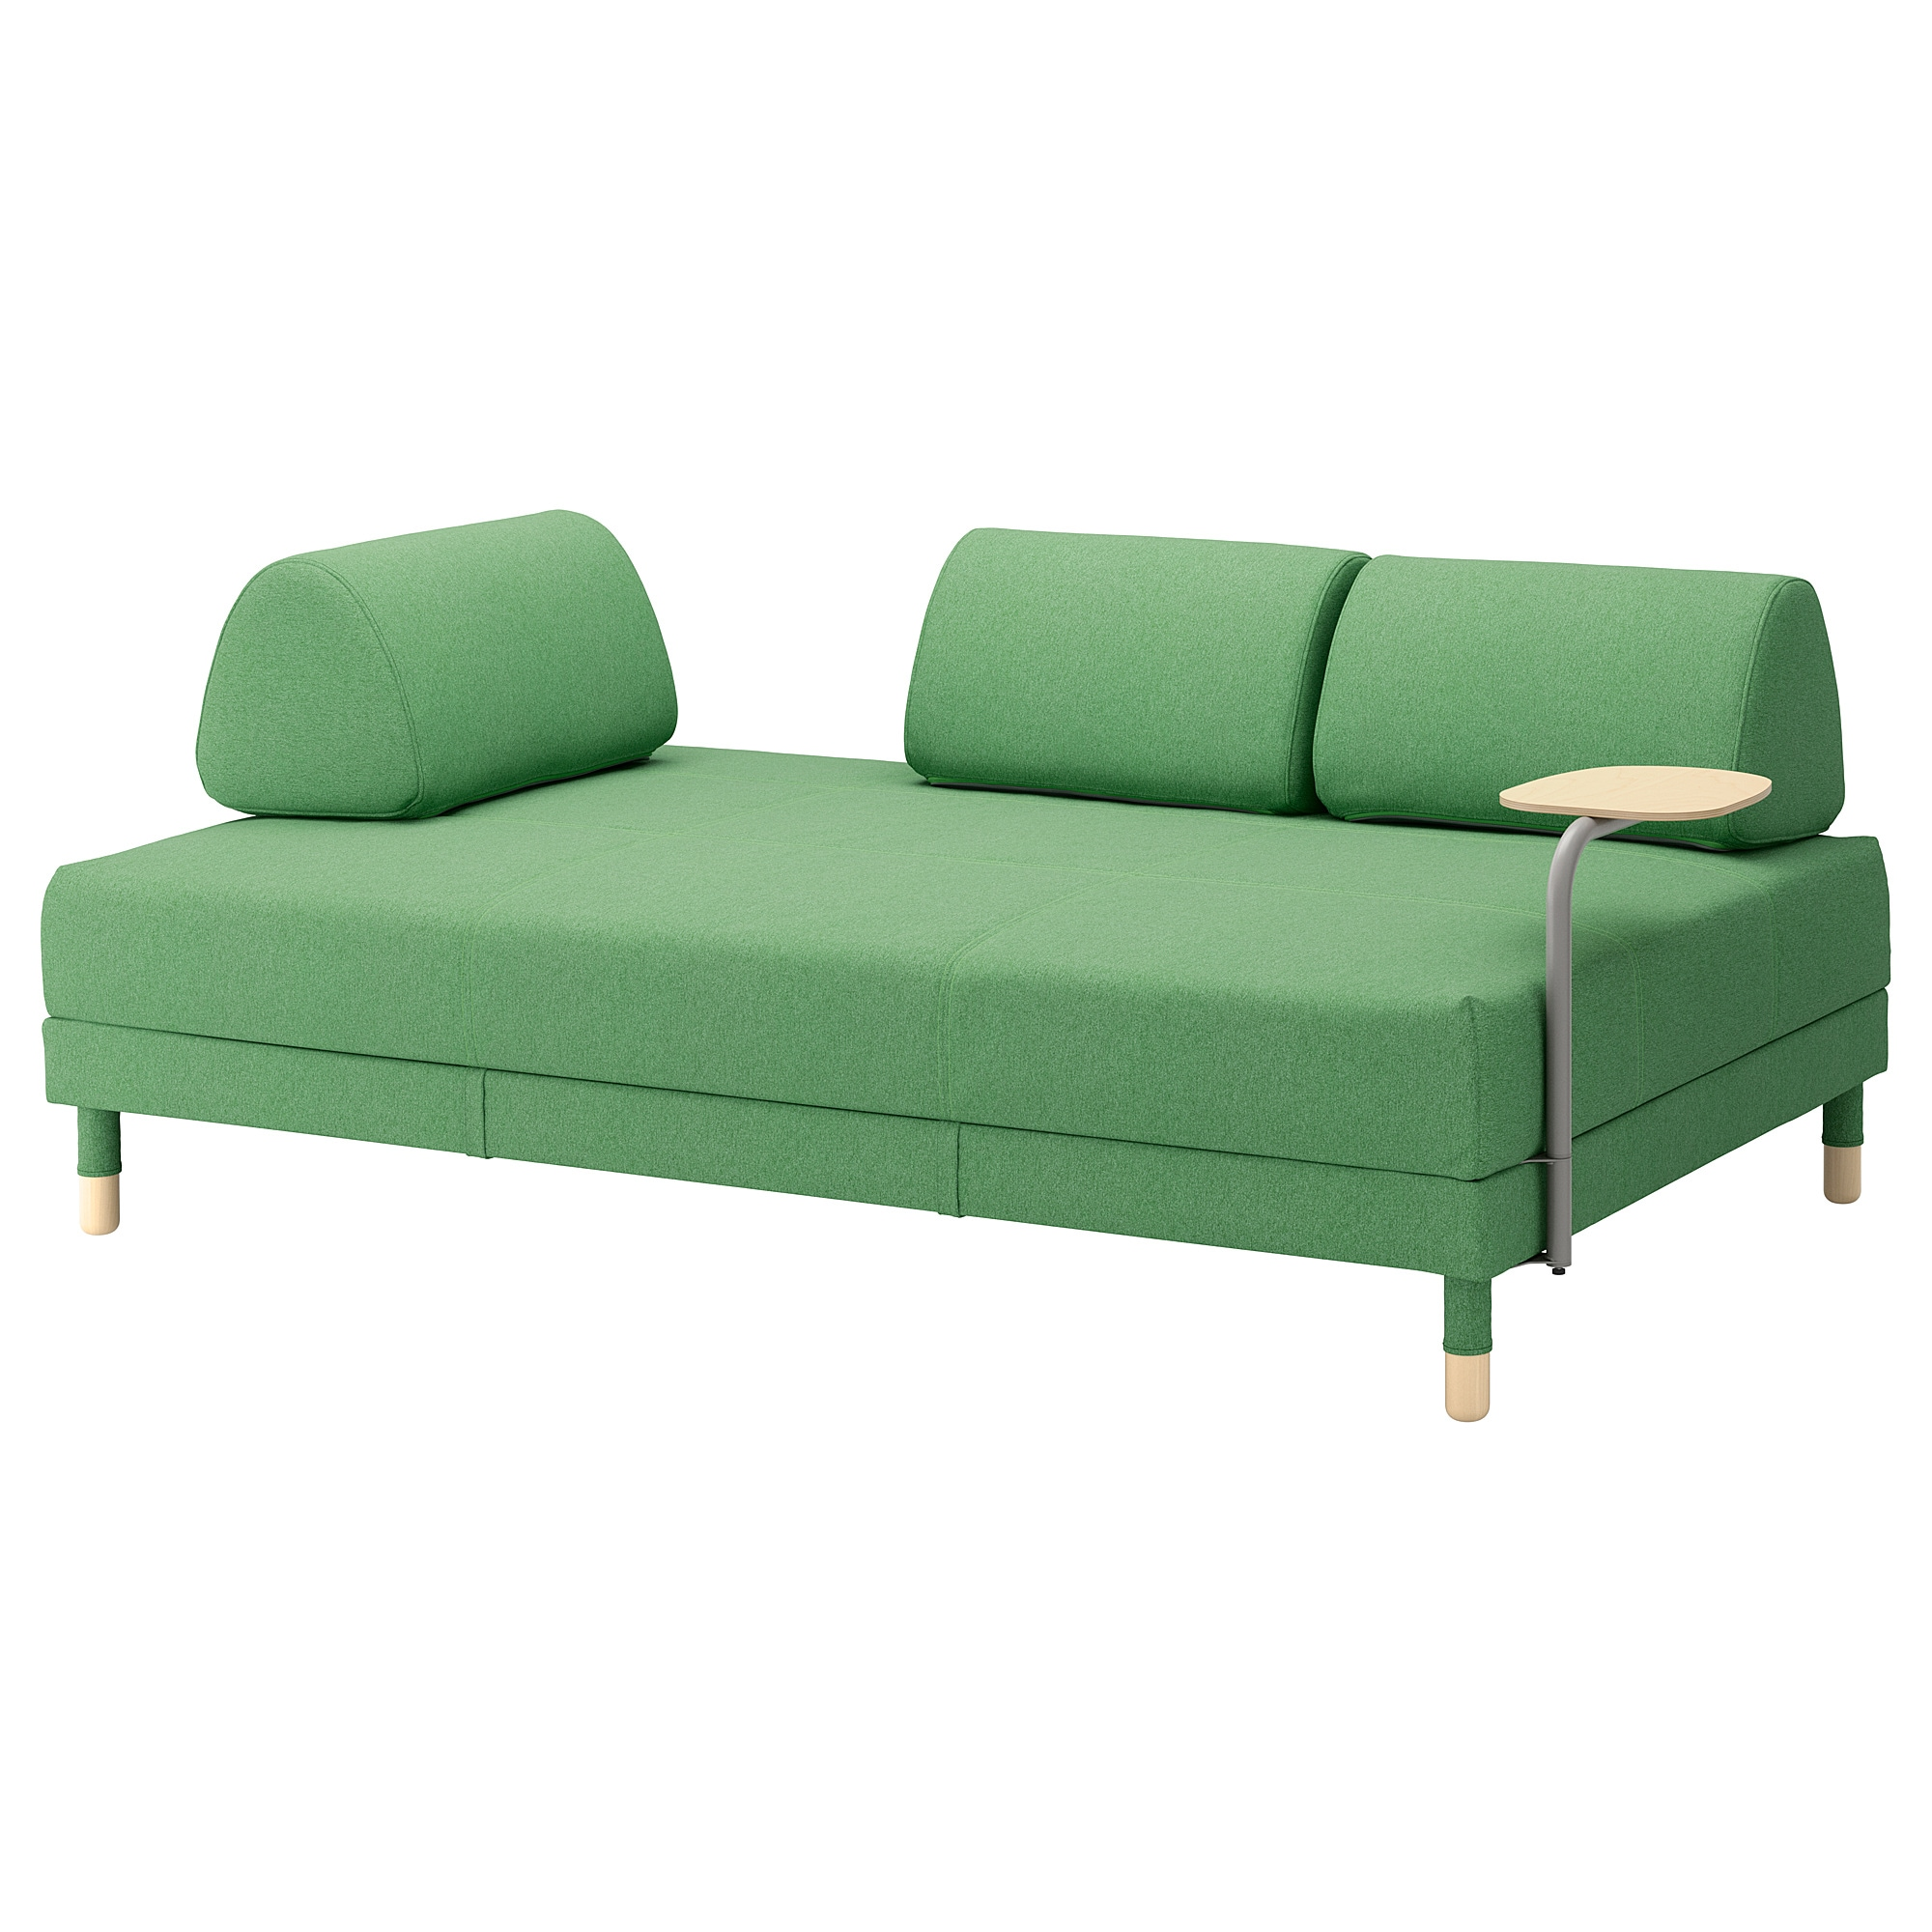 FLOTTEBO Sleeper Sofa With Side Table, Lysed Green